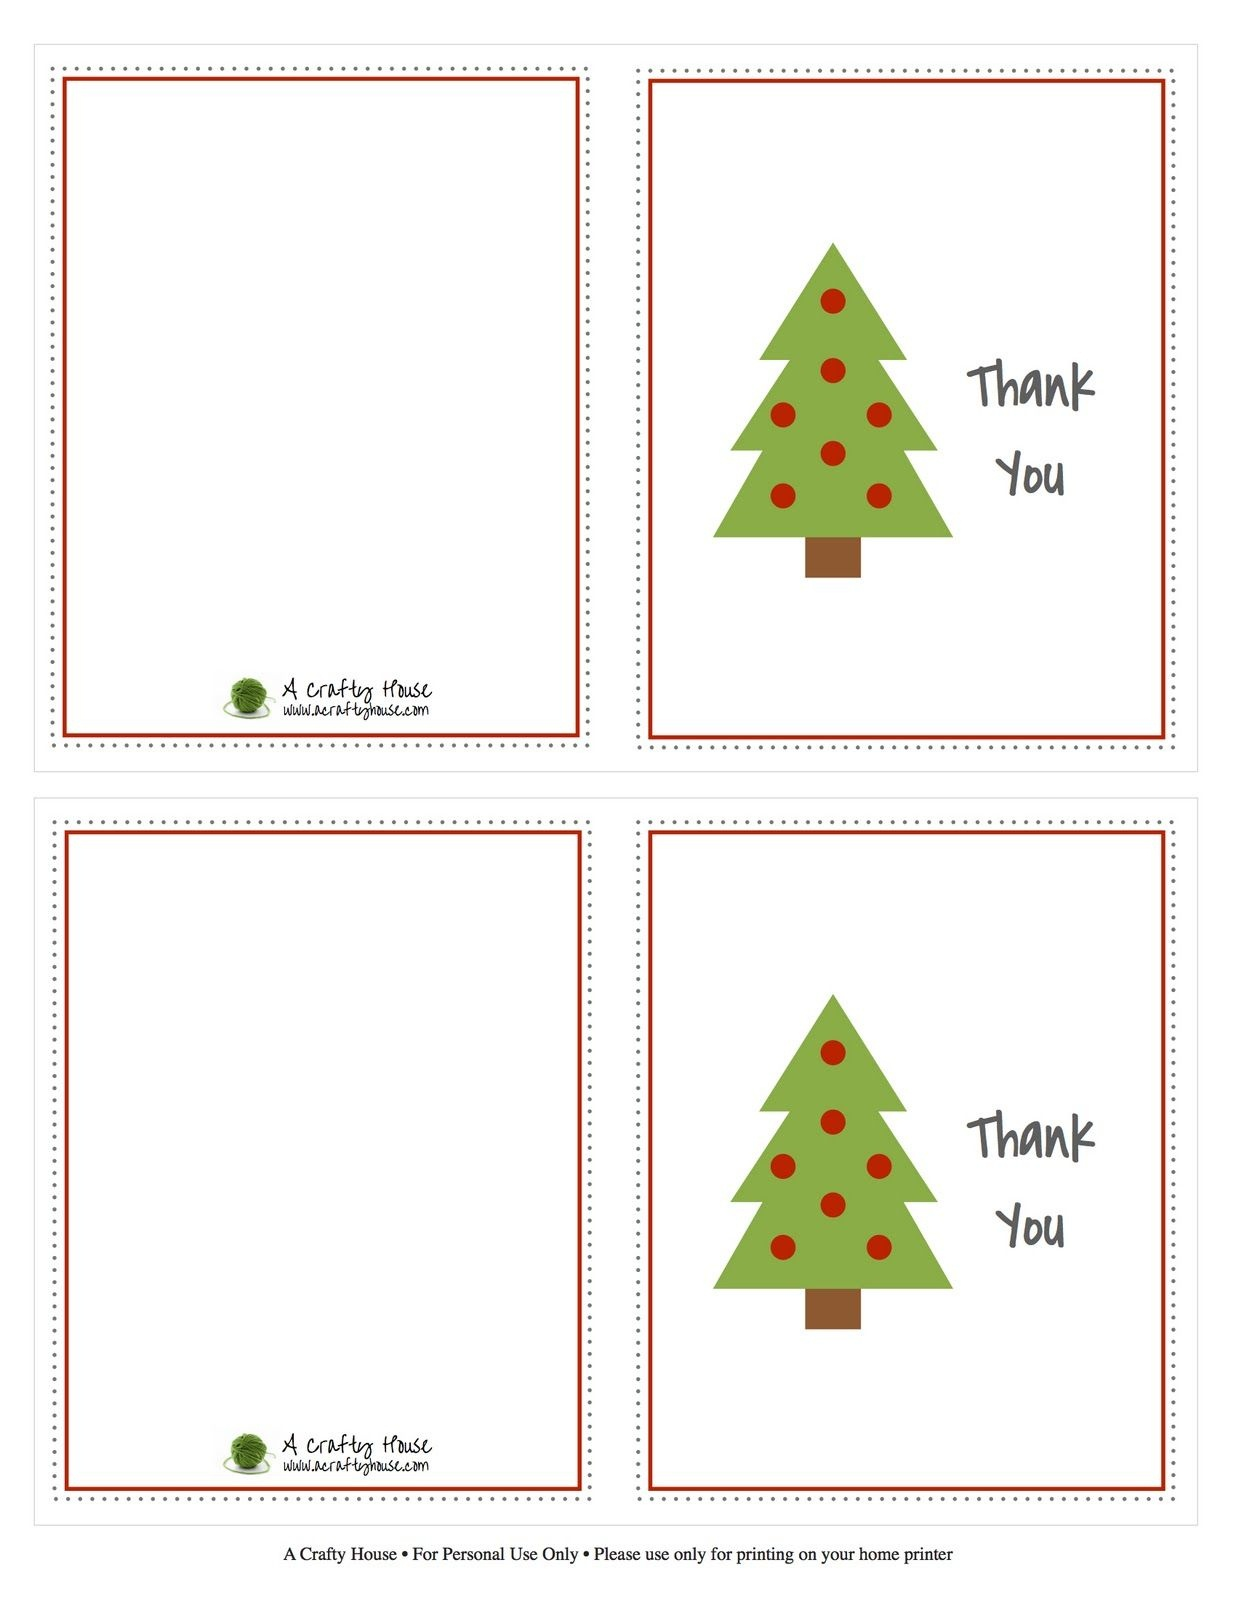 Free Printable Christmas Card Thank You Note | A Crafty House - Christmas Thank You Cards Printable Free